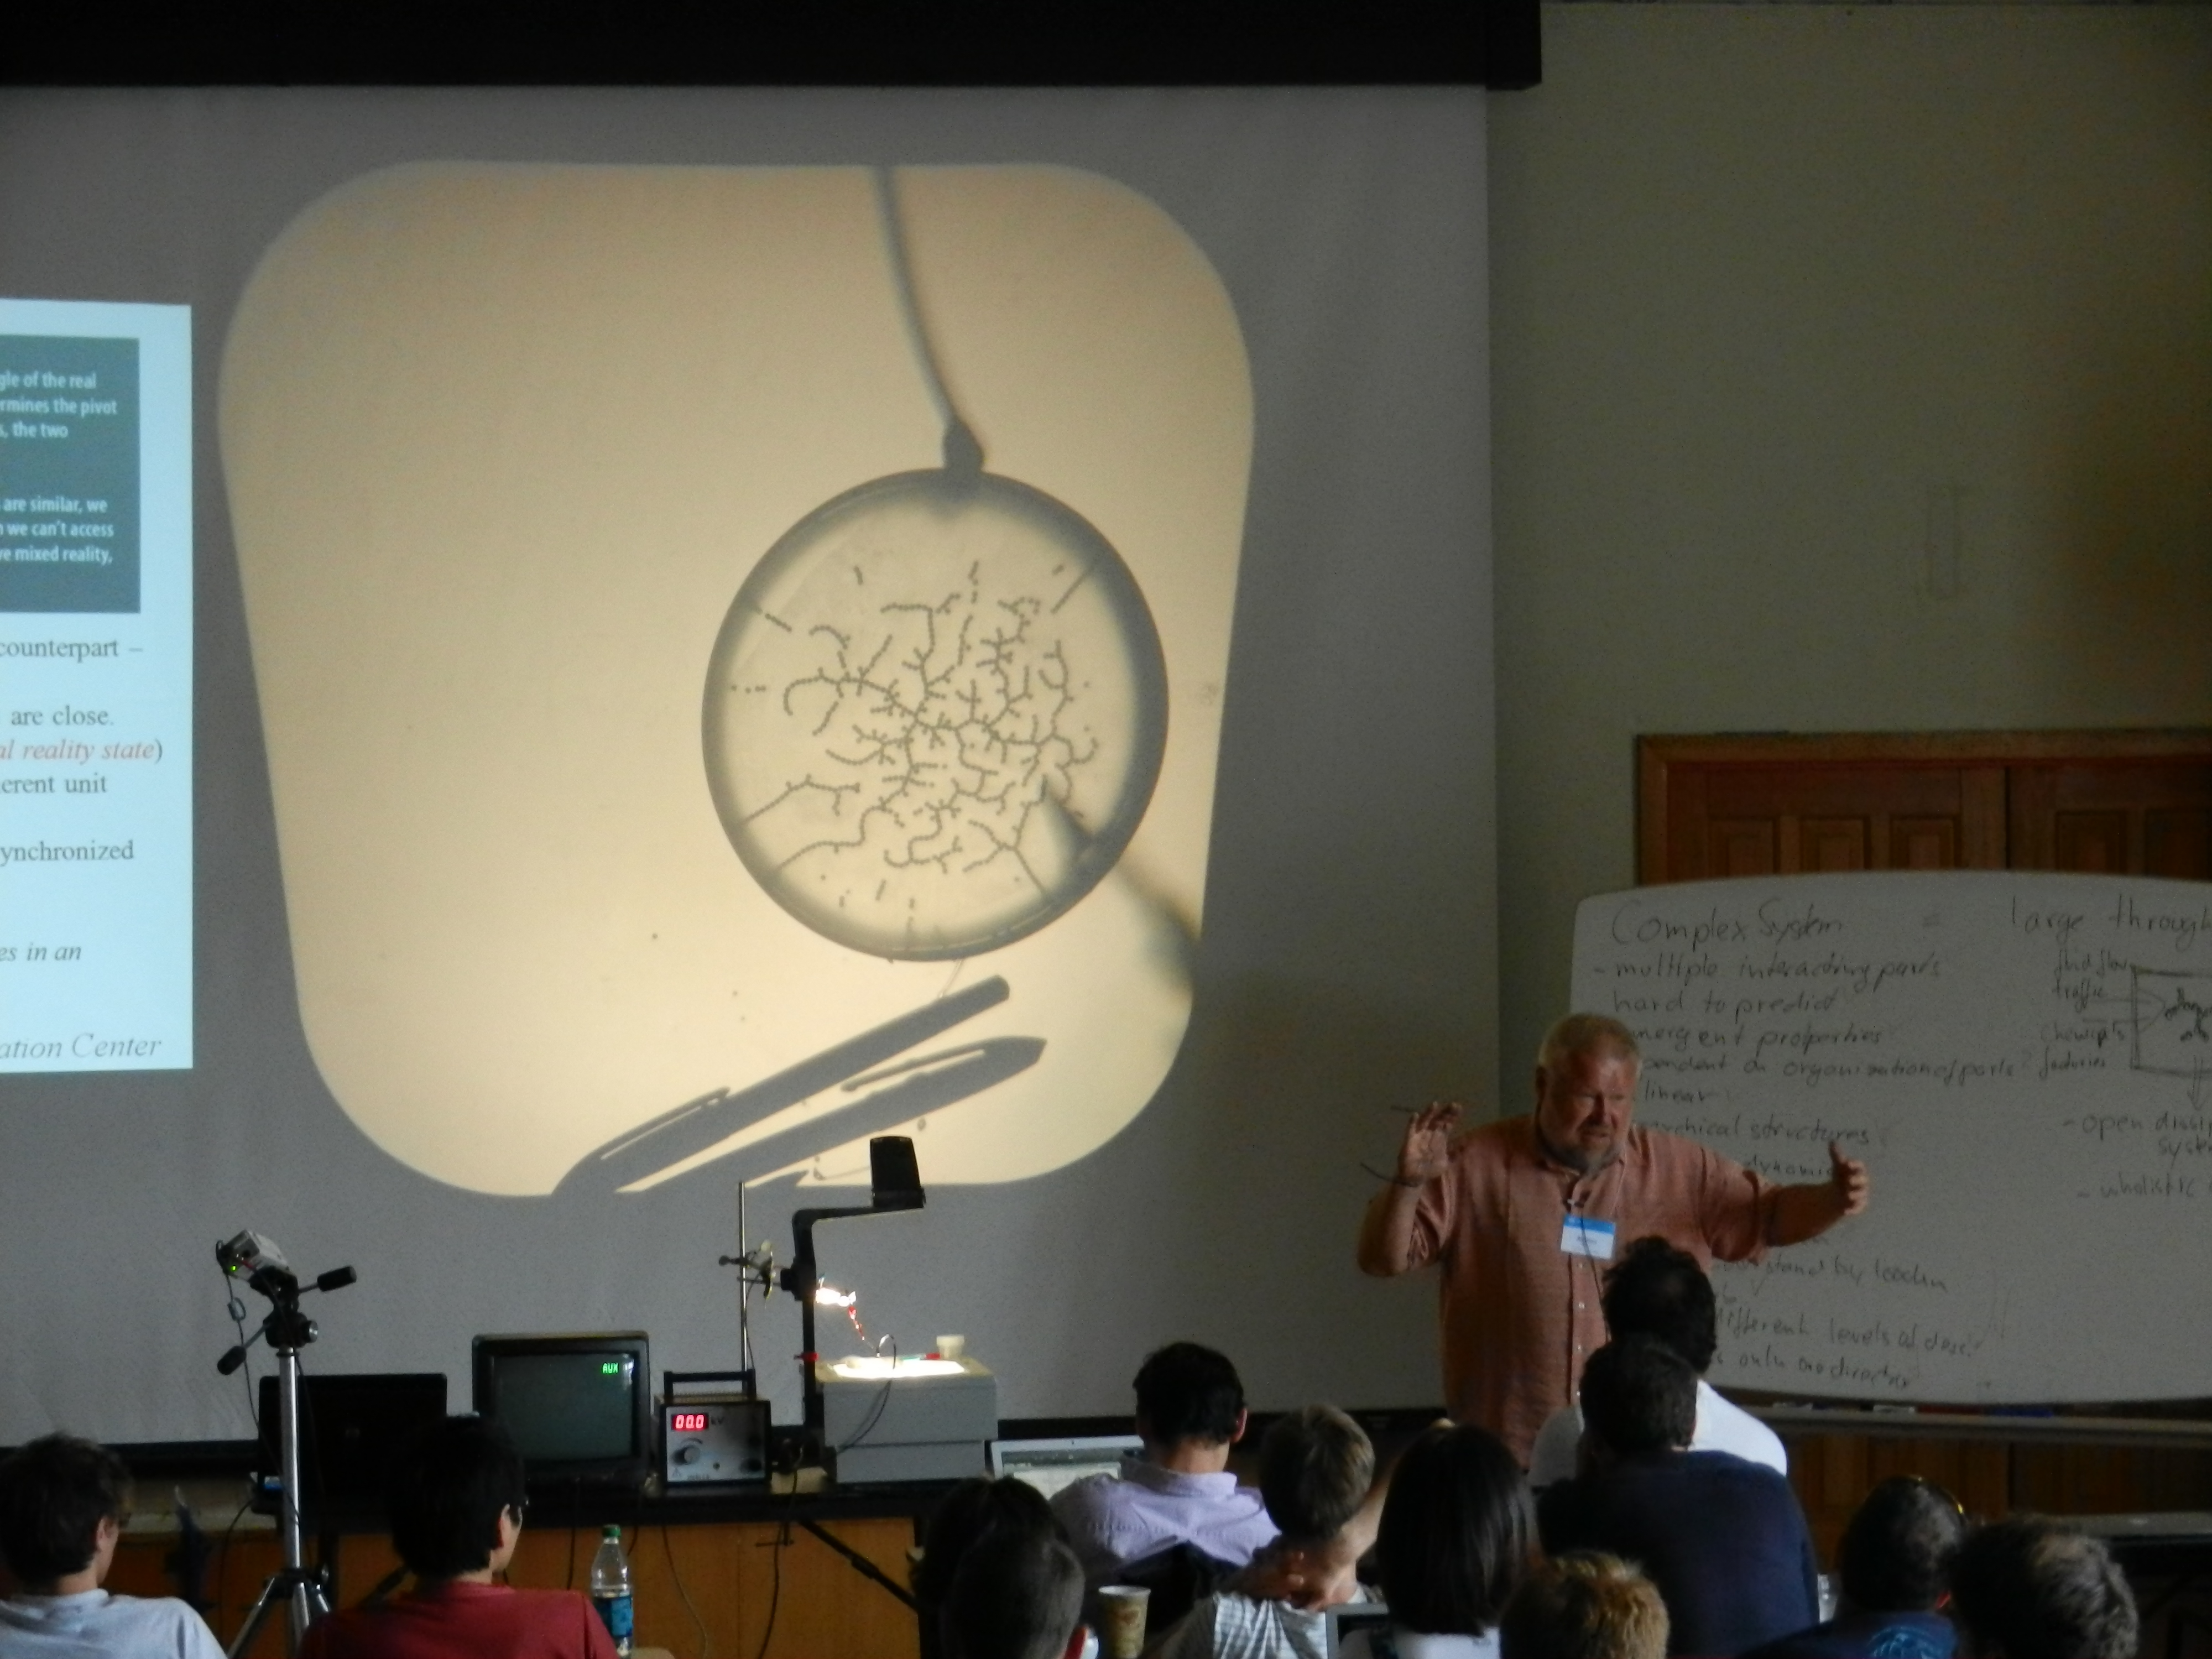 Alfred Hübler demonstrates how fractal self-organization arises when electricity is passed through metal ball bearings.